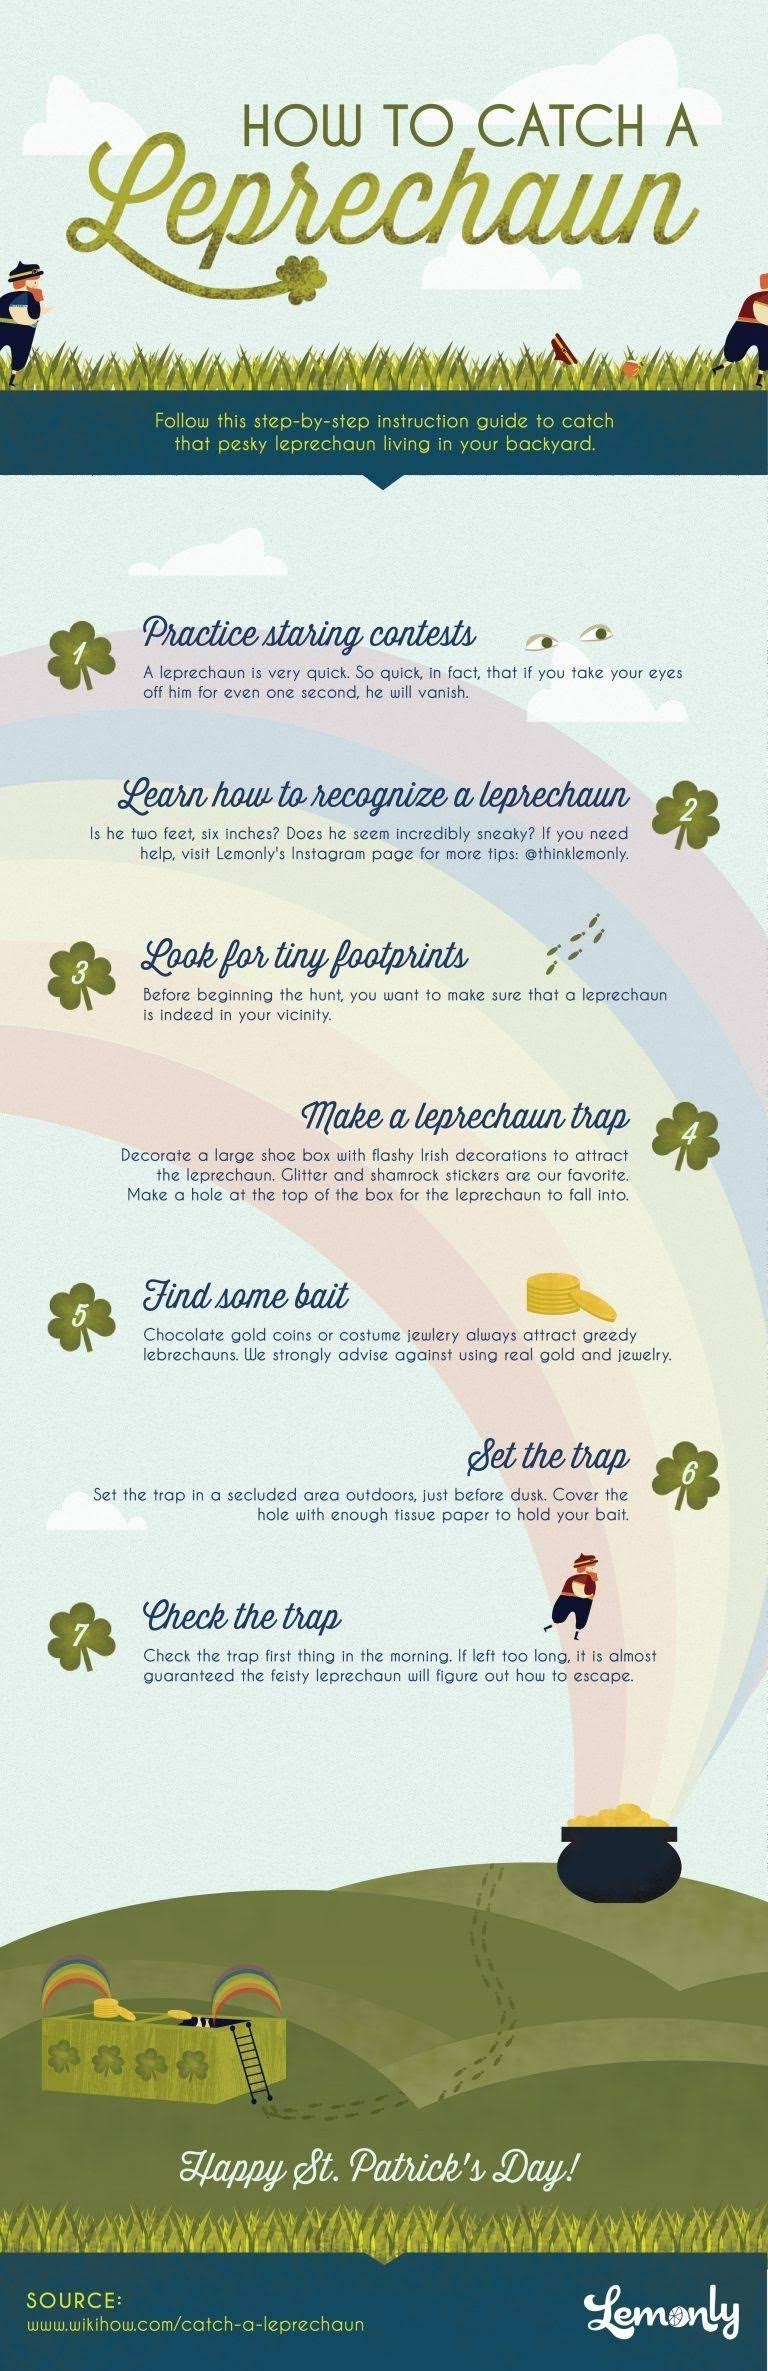 How to catch a gossip #infographic